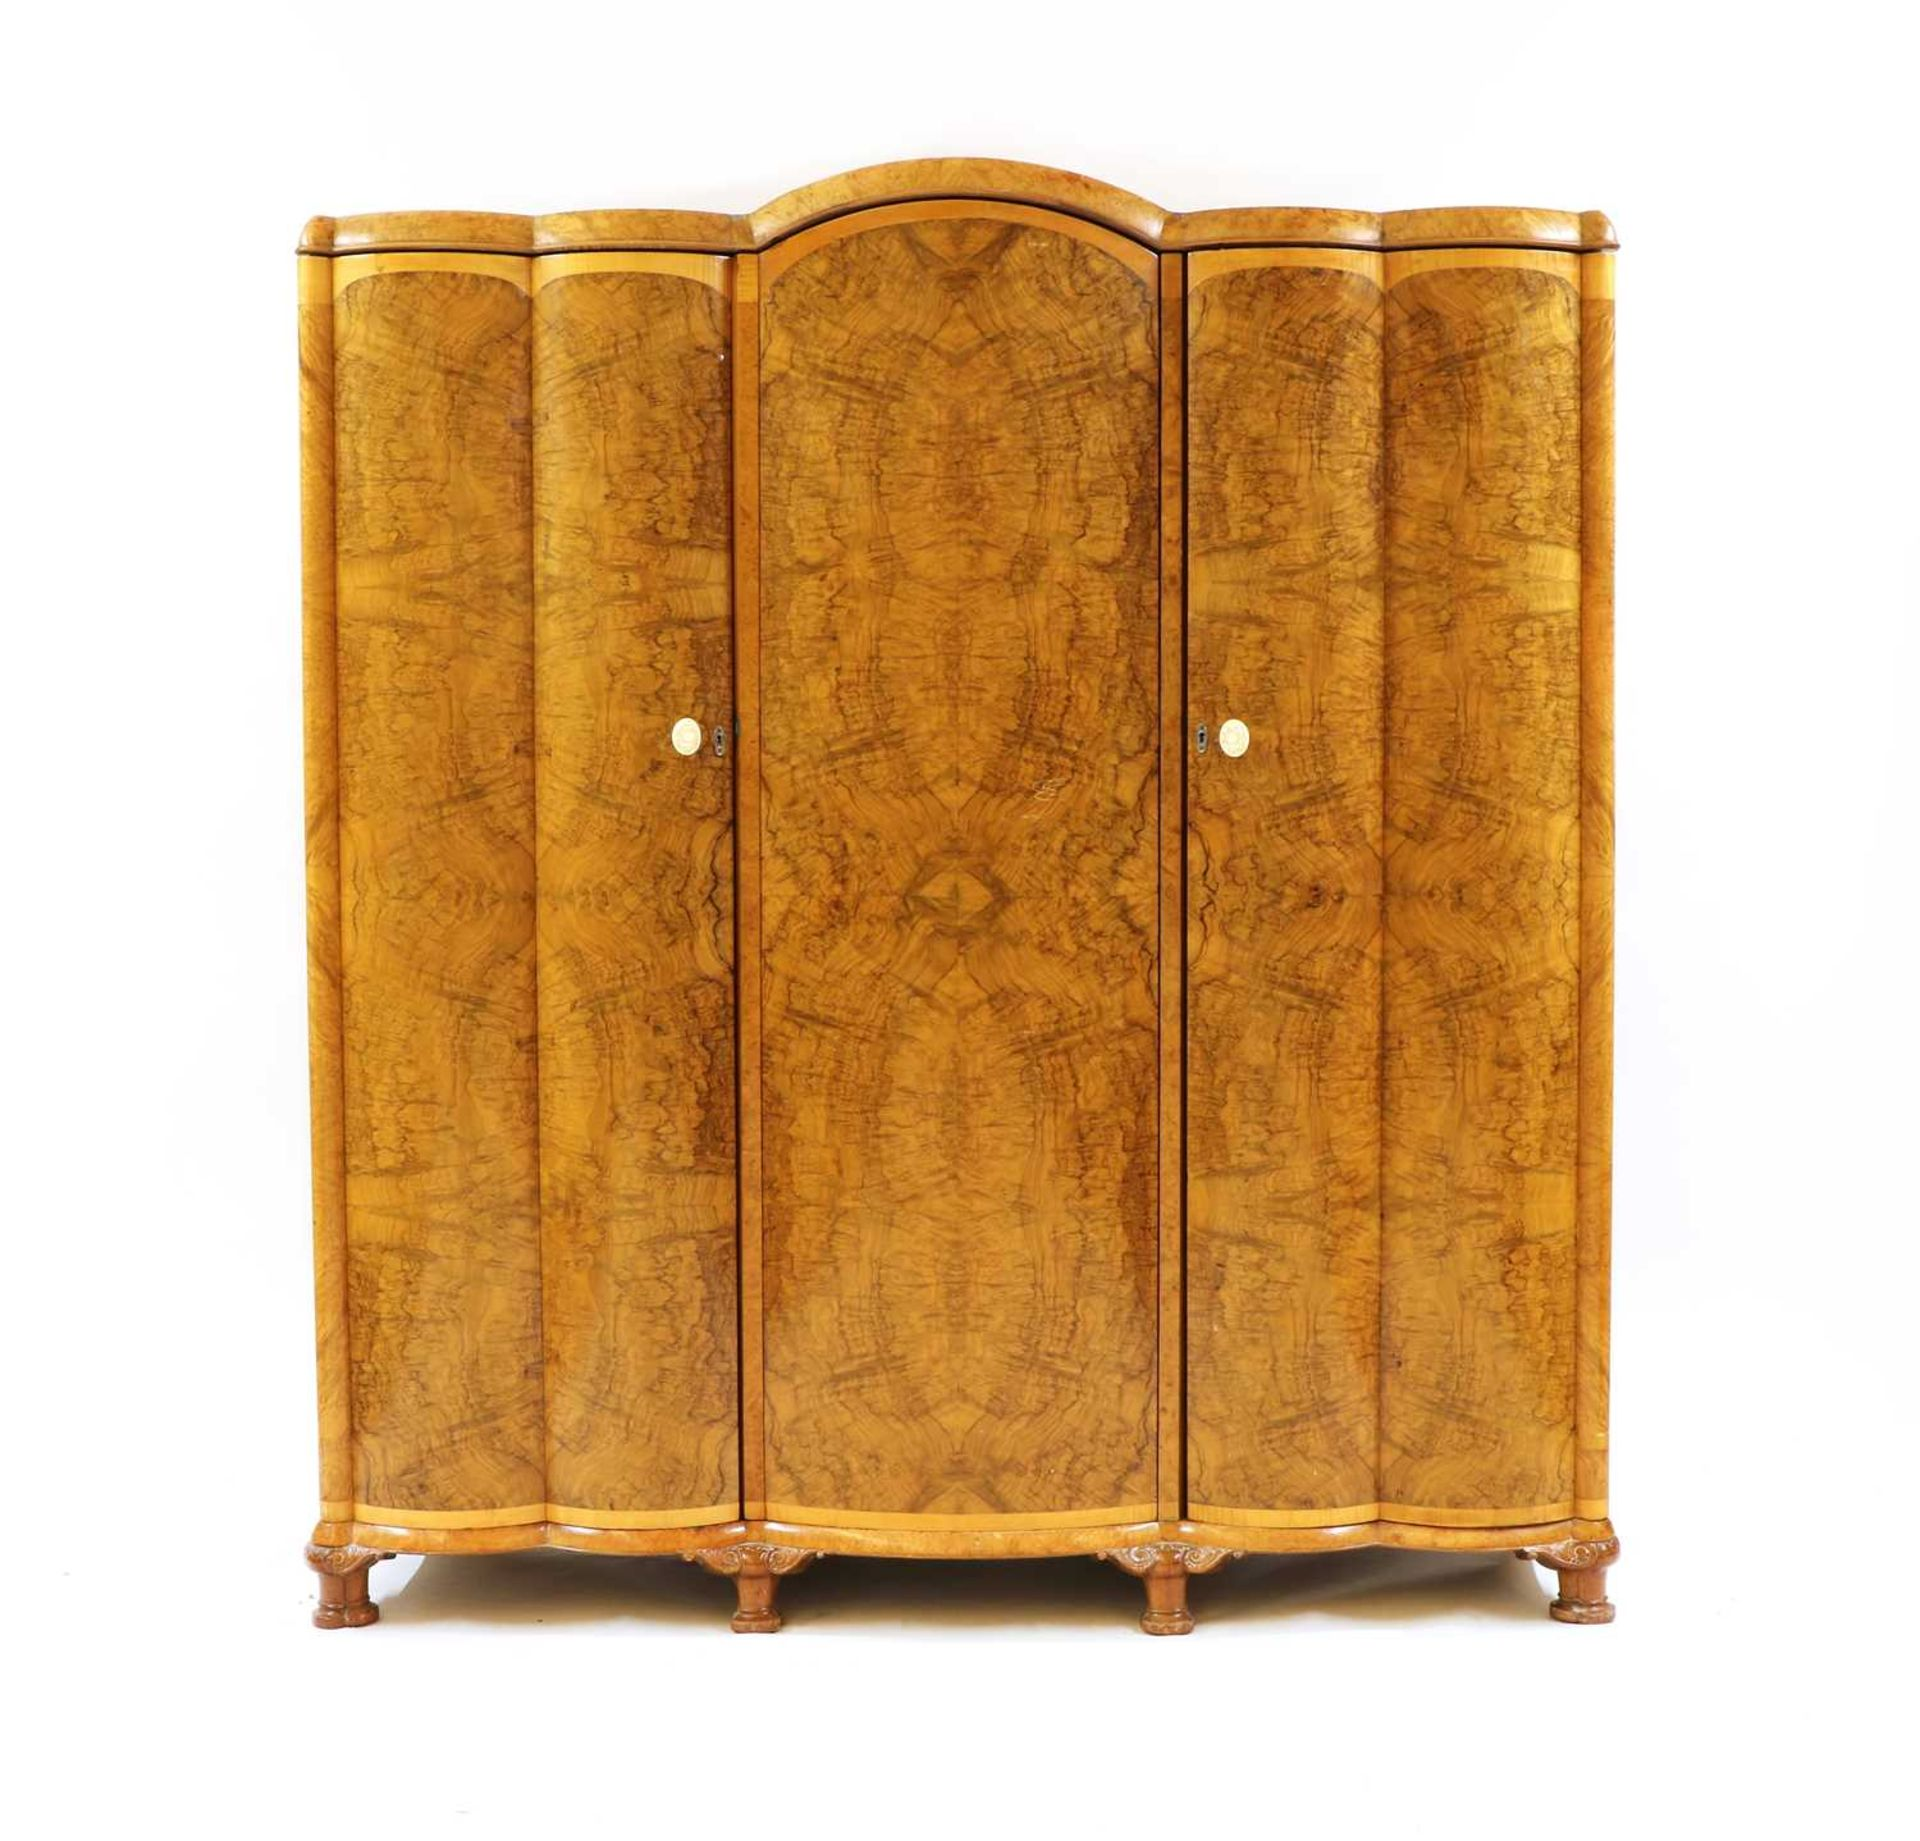 An Art Deco burr walnut and maple bedroom suite, - Image 4 of 45